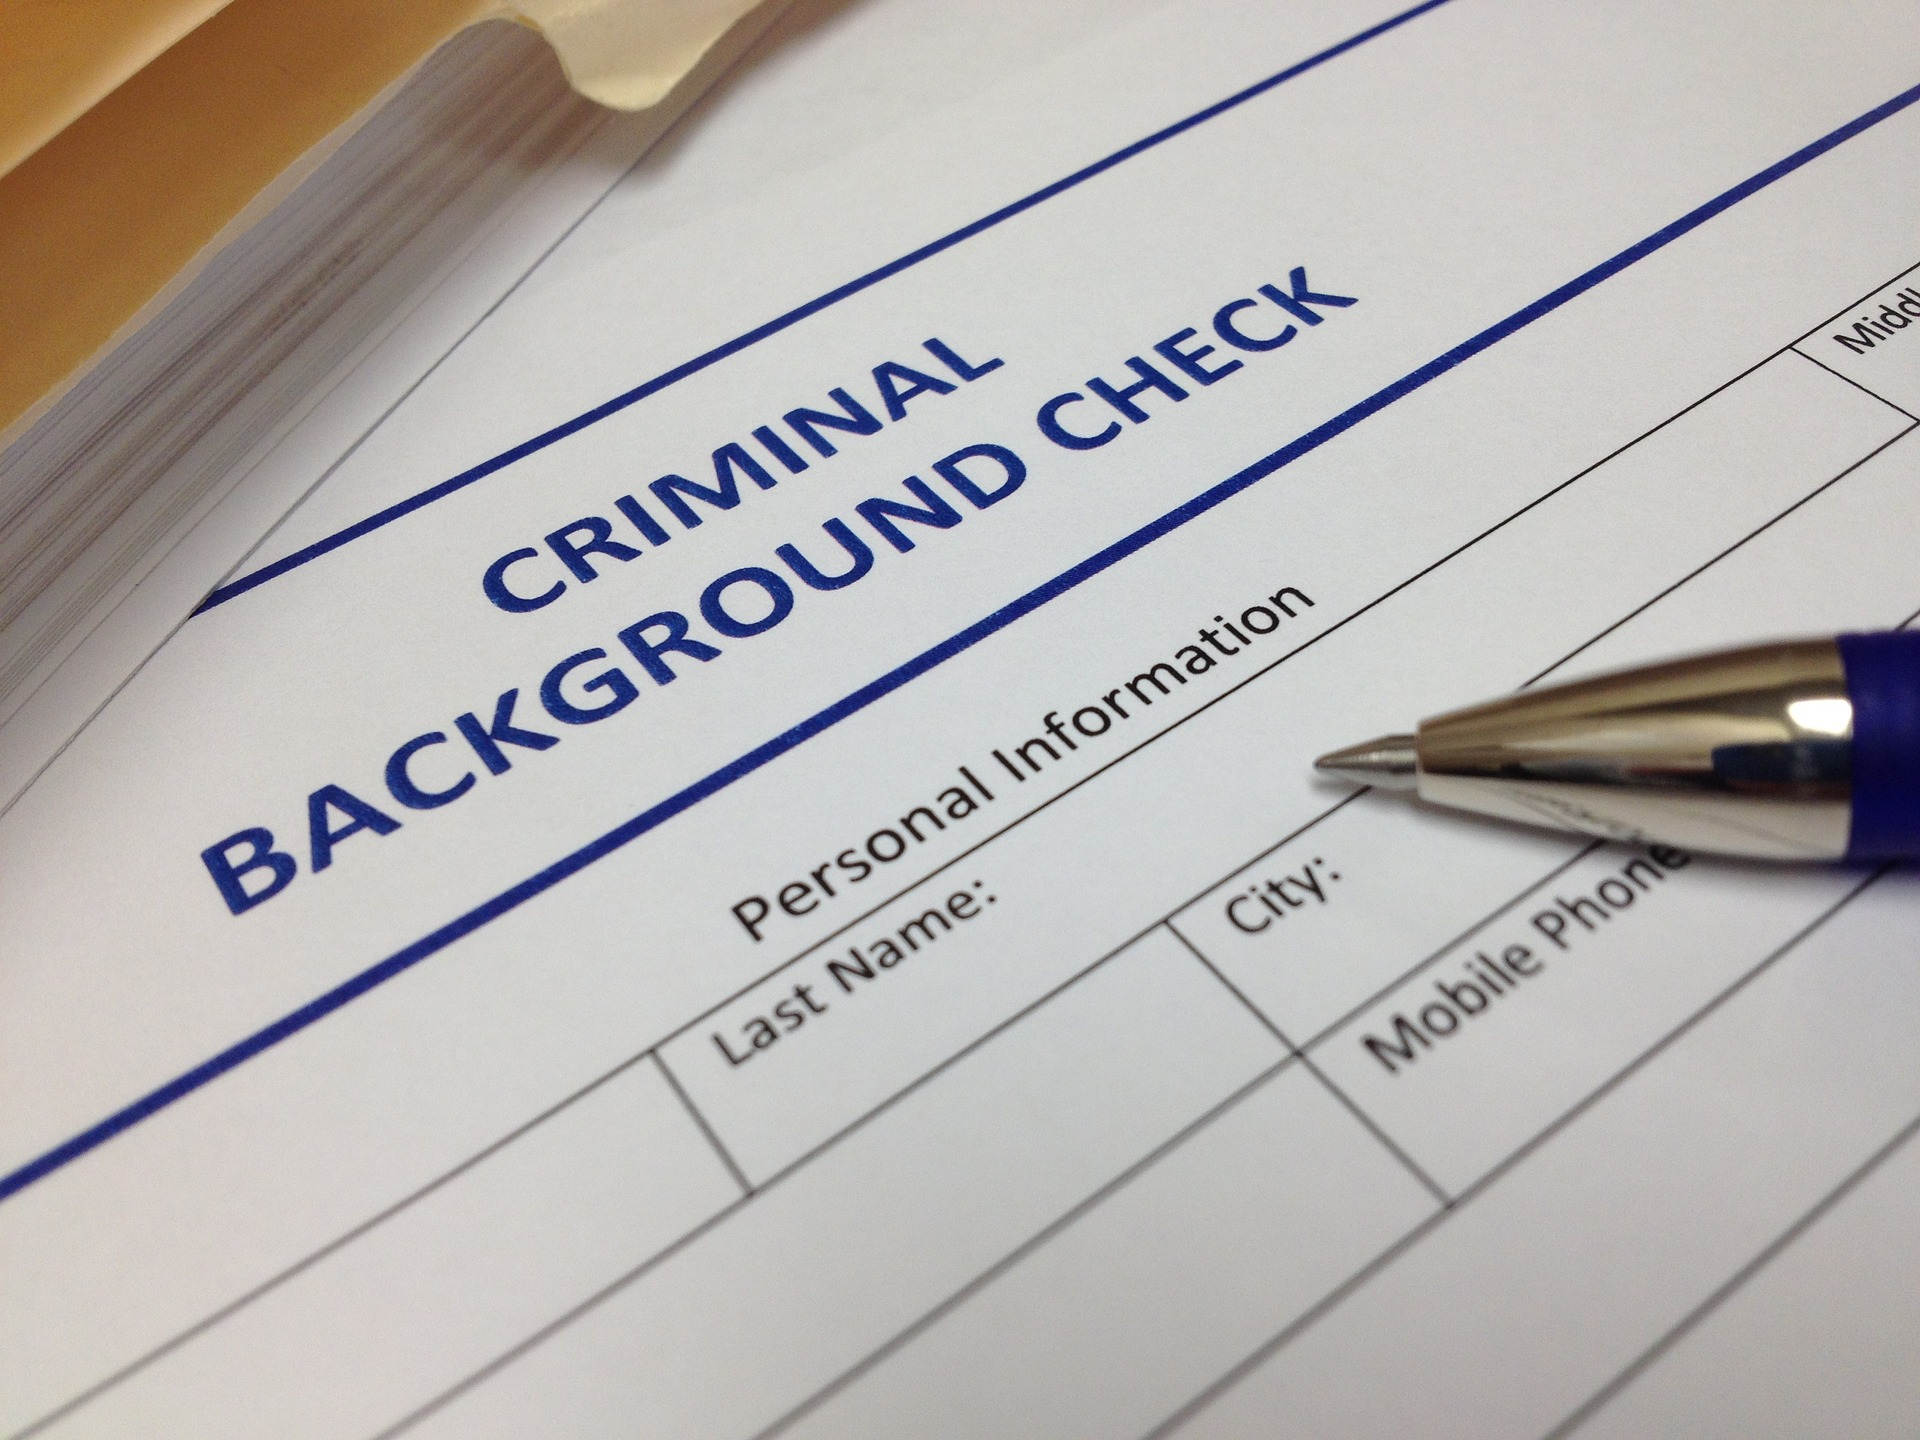 background-check-1054067_1920.jpg